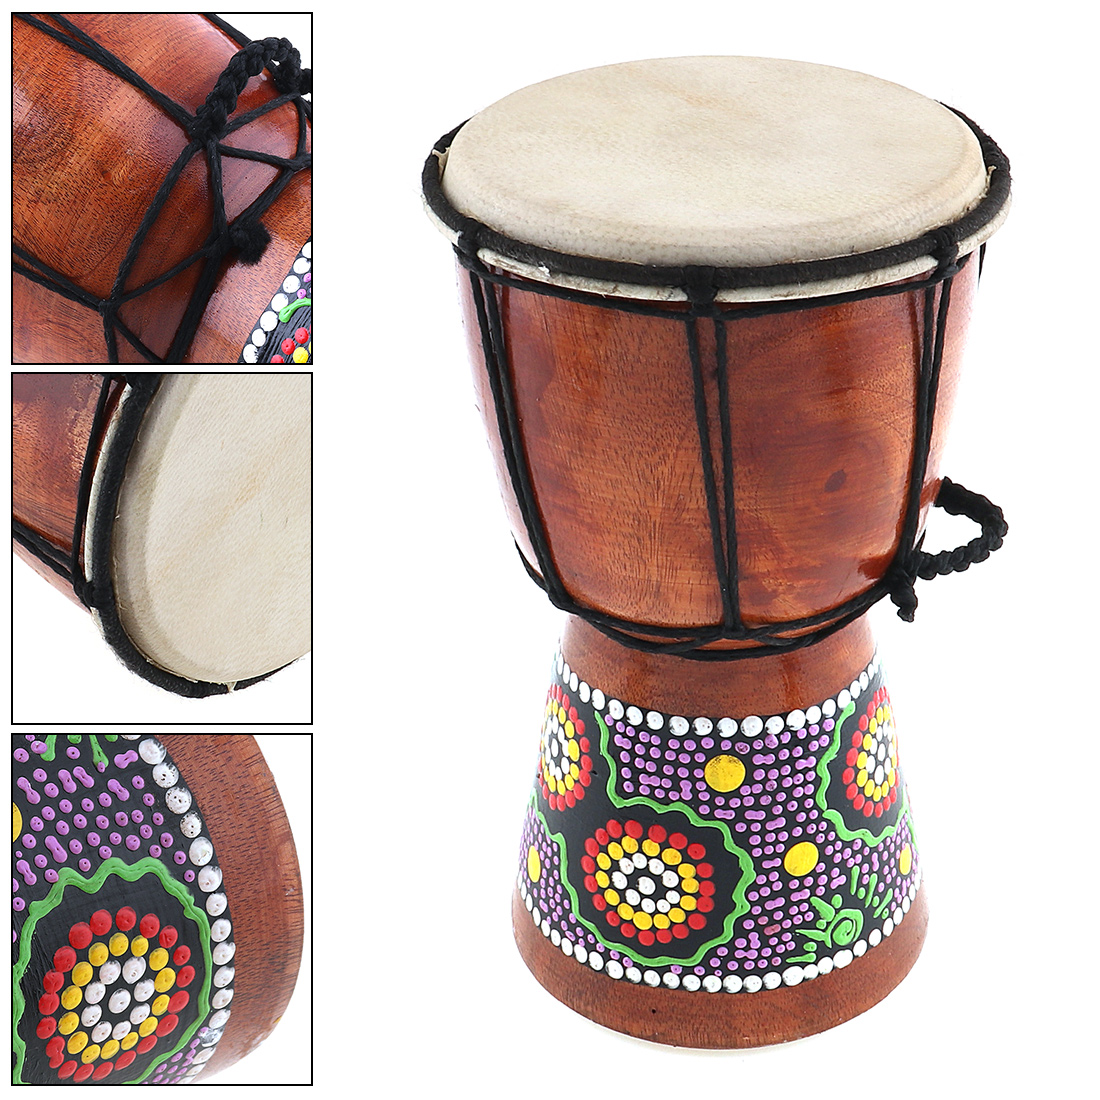 4 Inch Professional African Djembe Drum Wood Goat Skin Good Sound Traditional Musical Instrument